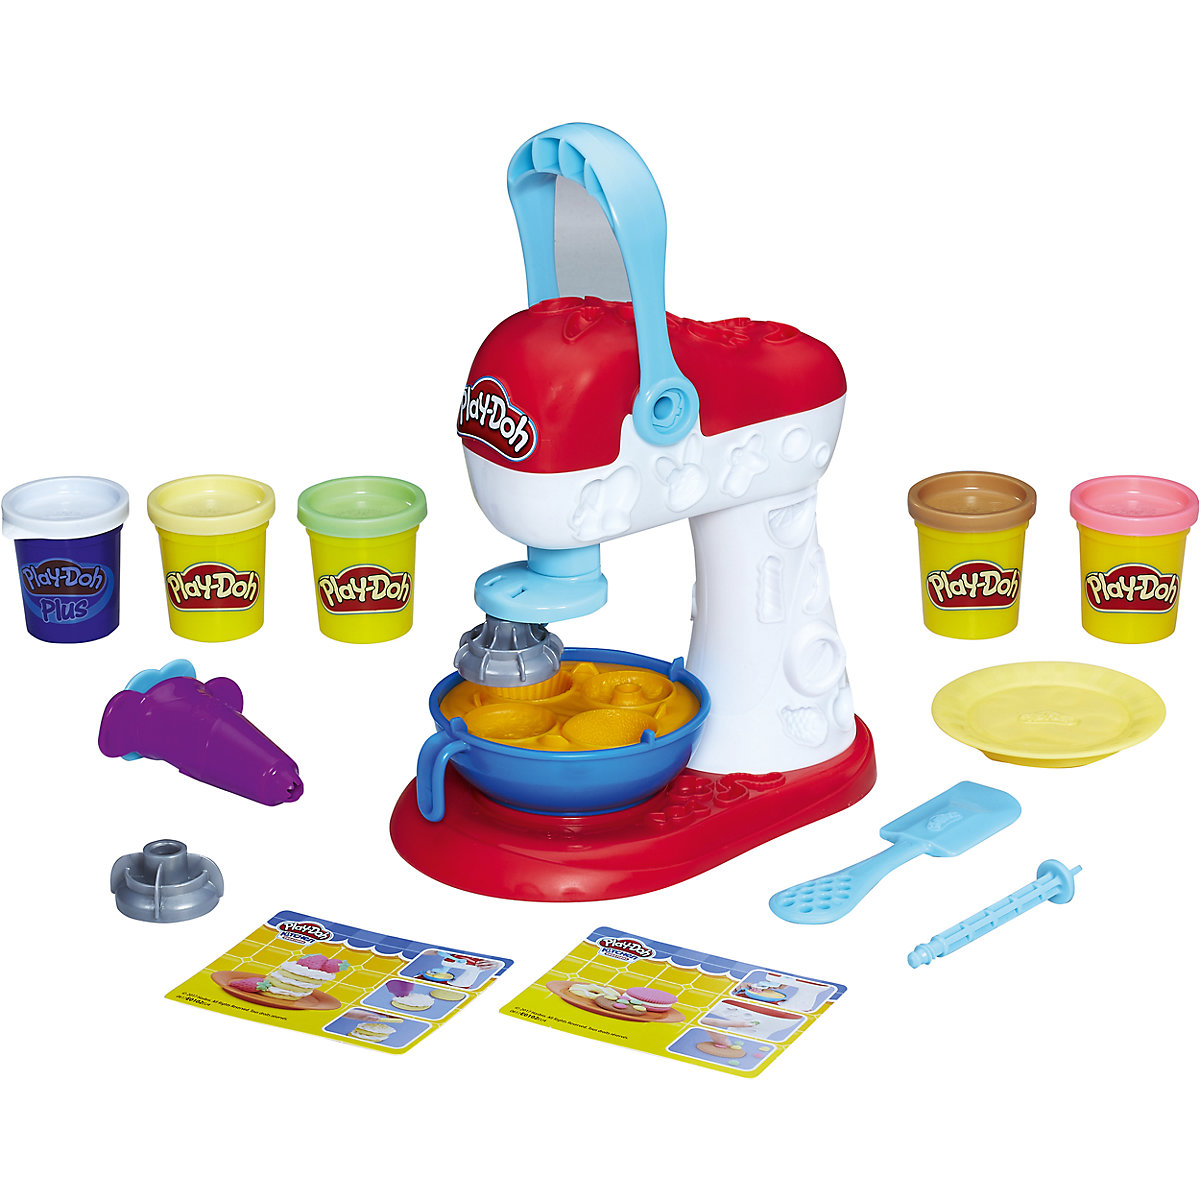 Play-Doh Modeling Clay/Slime 7188868 office plasticine hand gum sculpt kids girl boy girls boys for children play-doh play doh modeling clay slime 8606530 office plasticine hand gum sculpt kids girl boy girls boys for children play doh